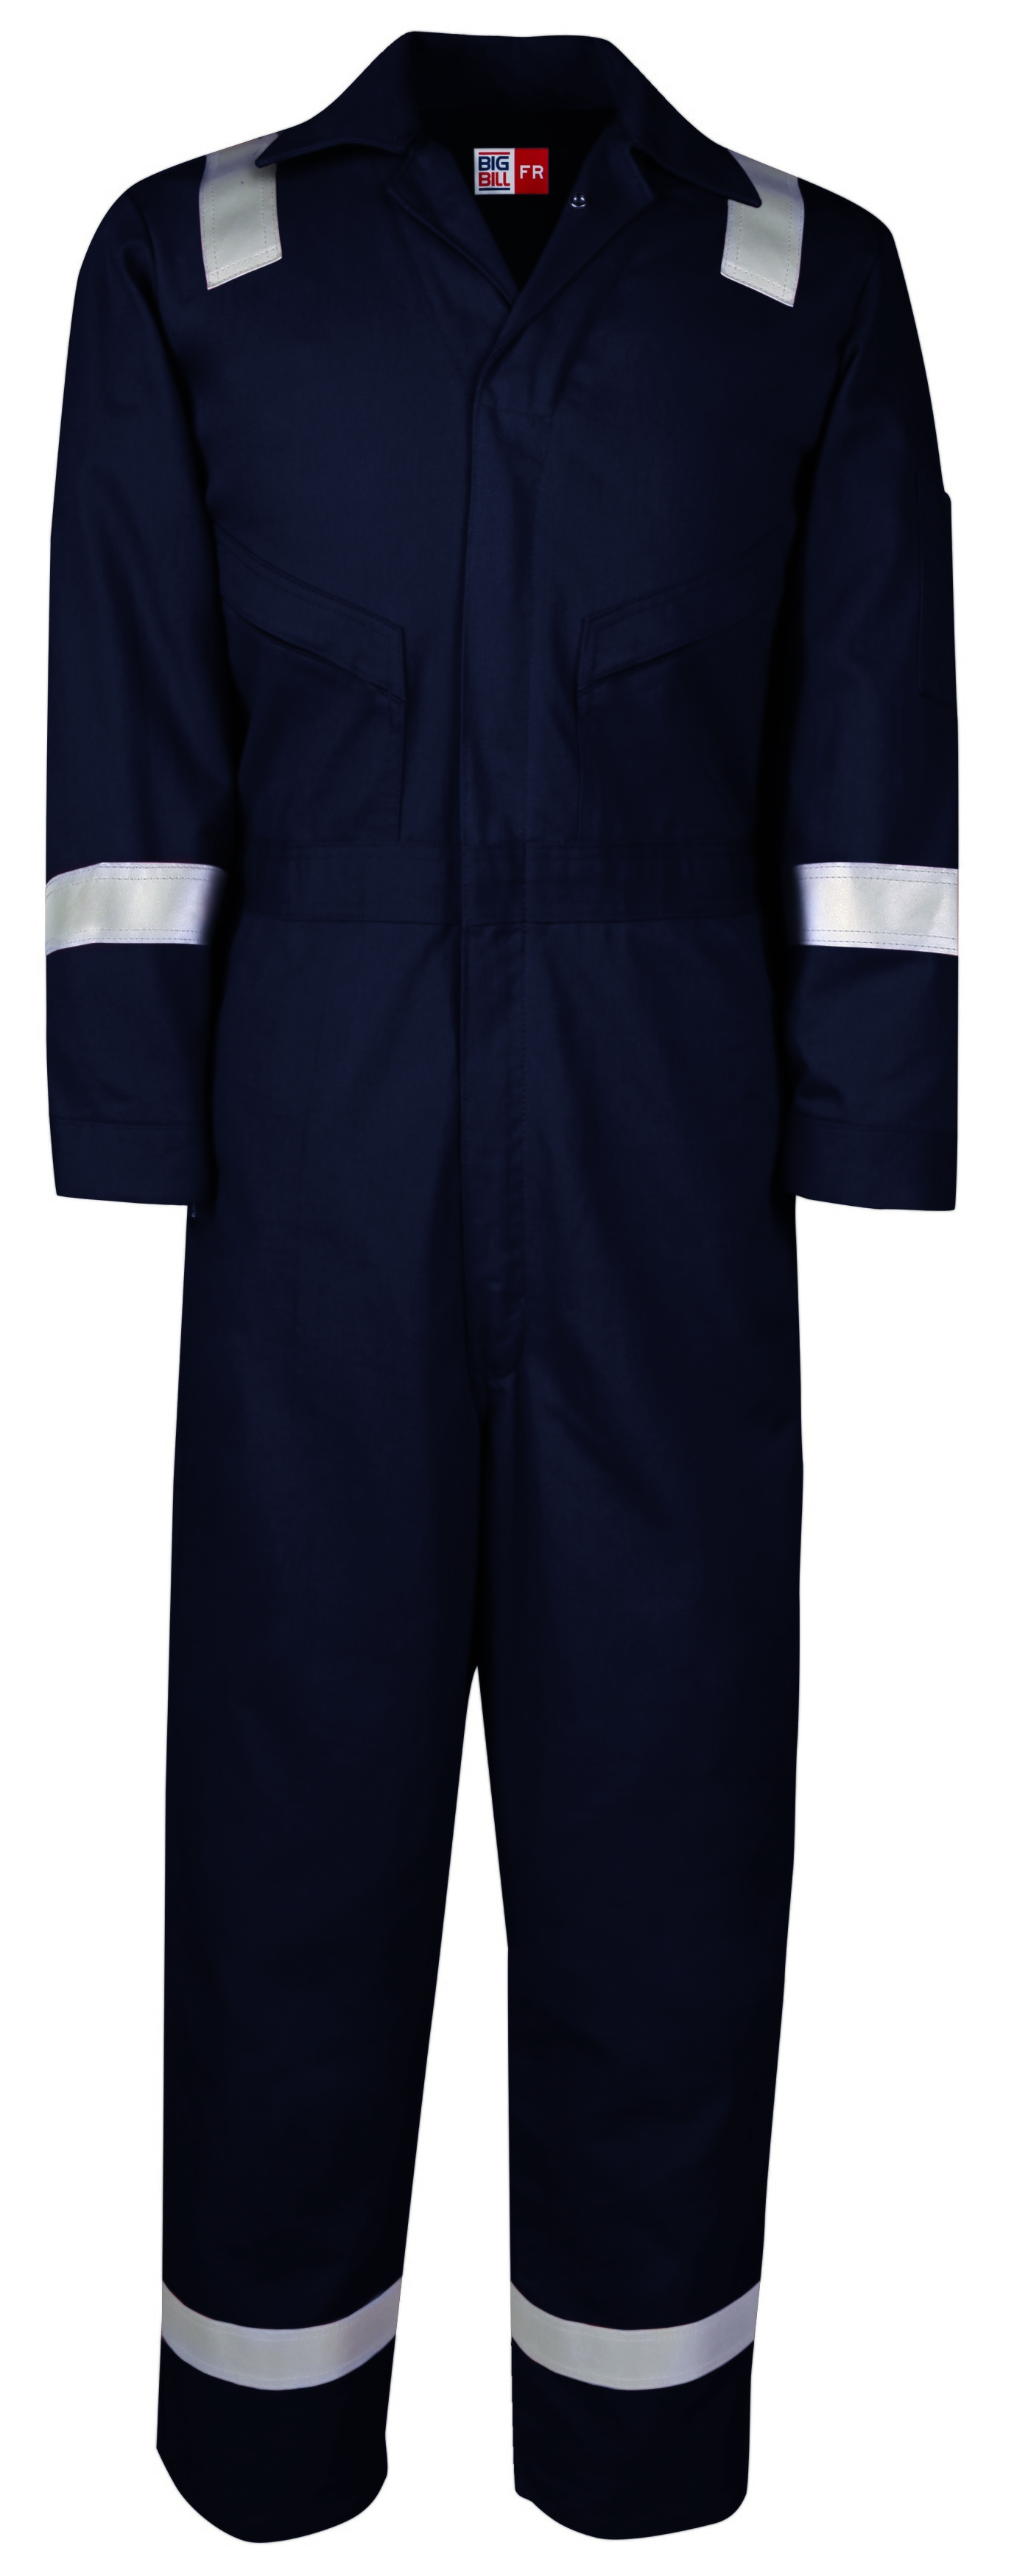 7 oz Westex UltraSoft Oilfield Coverall-